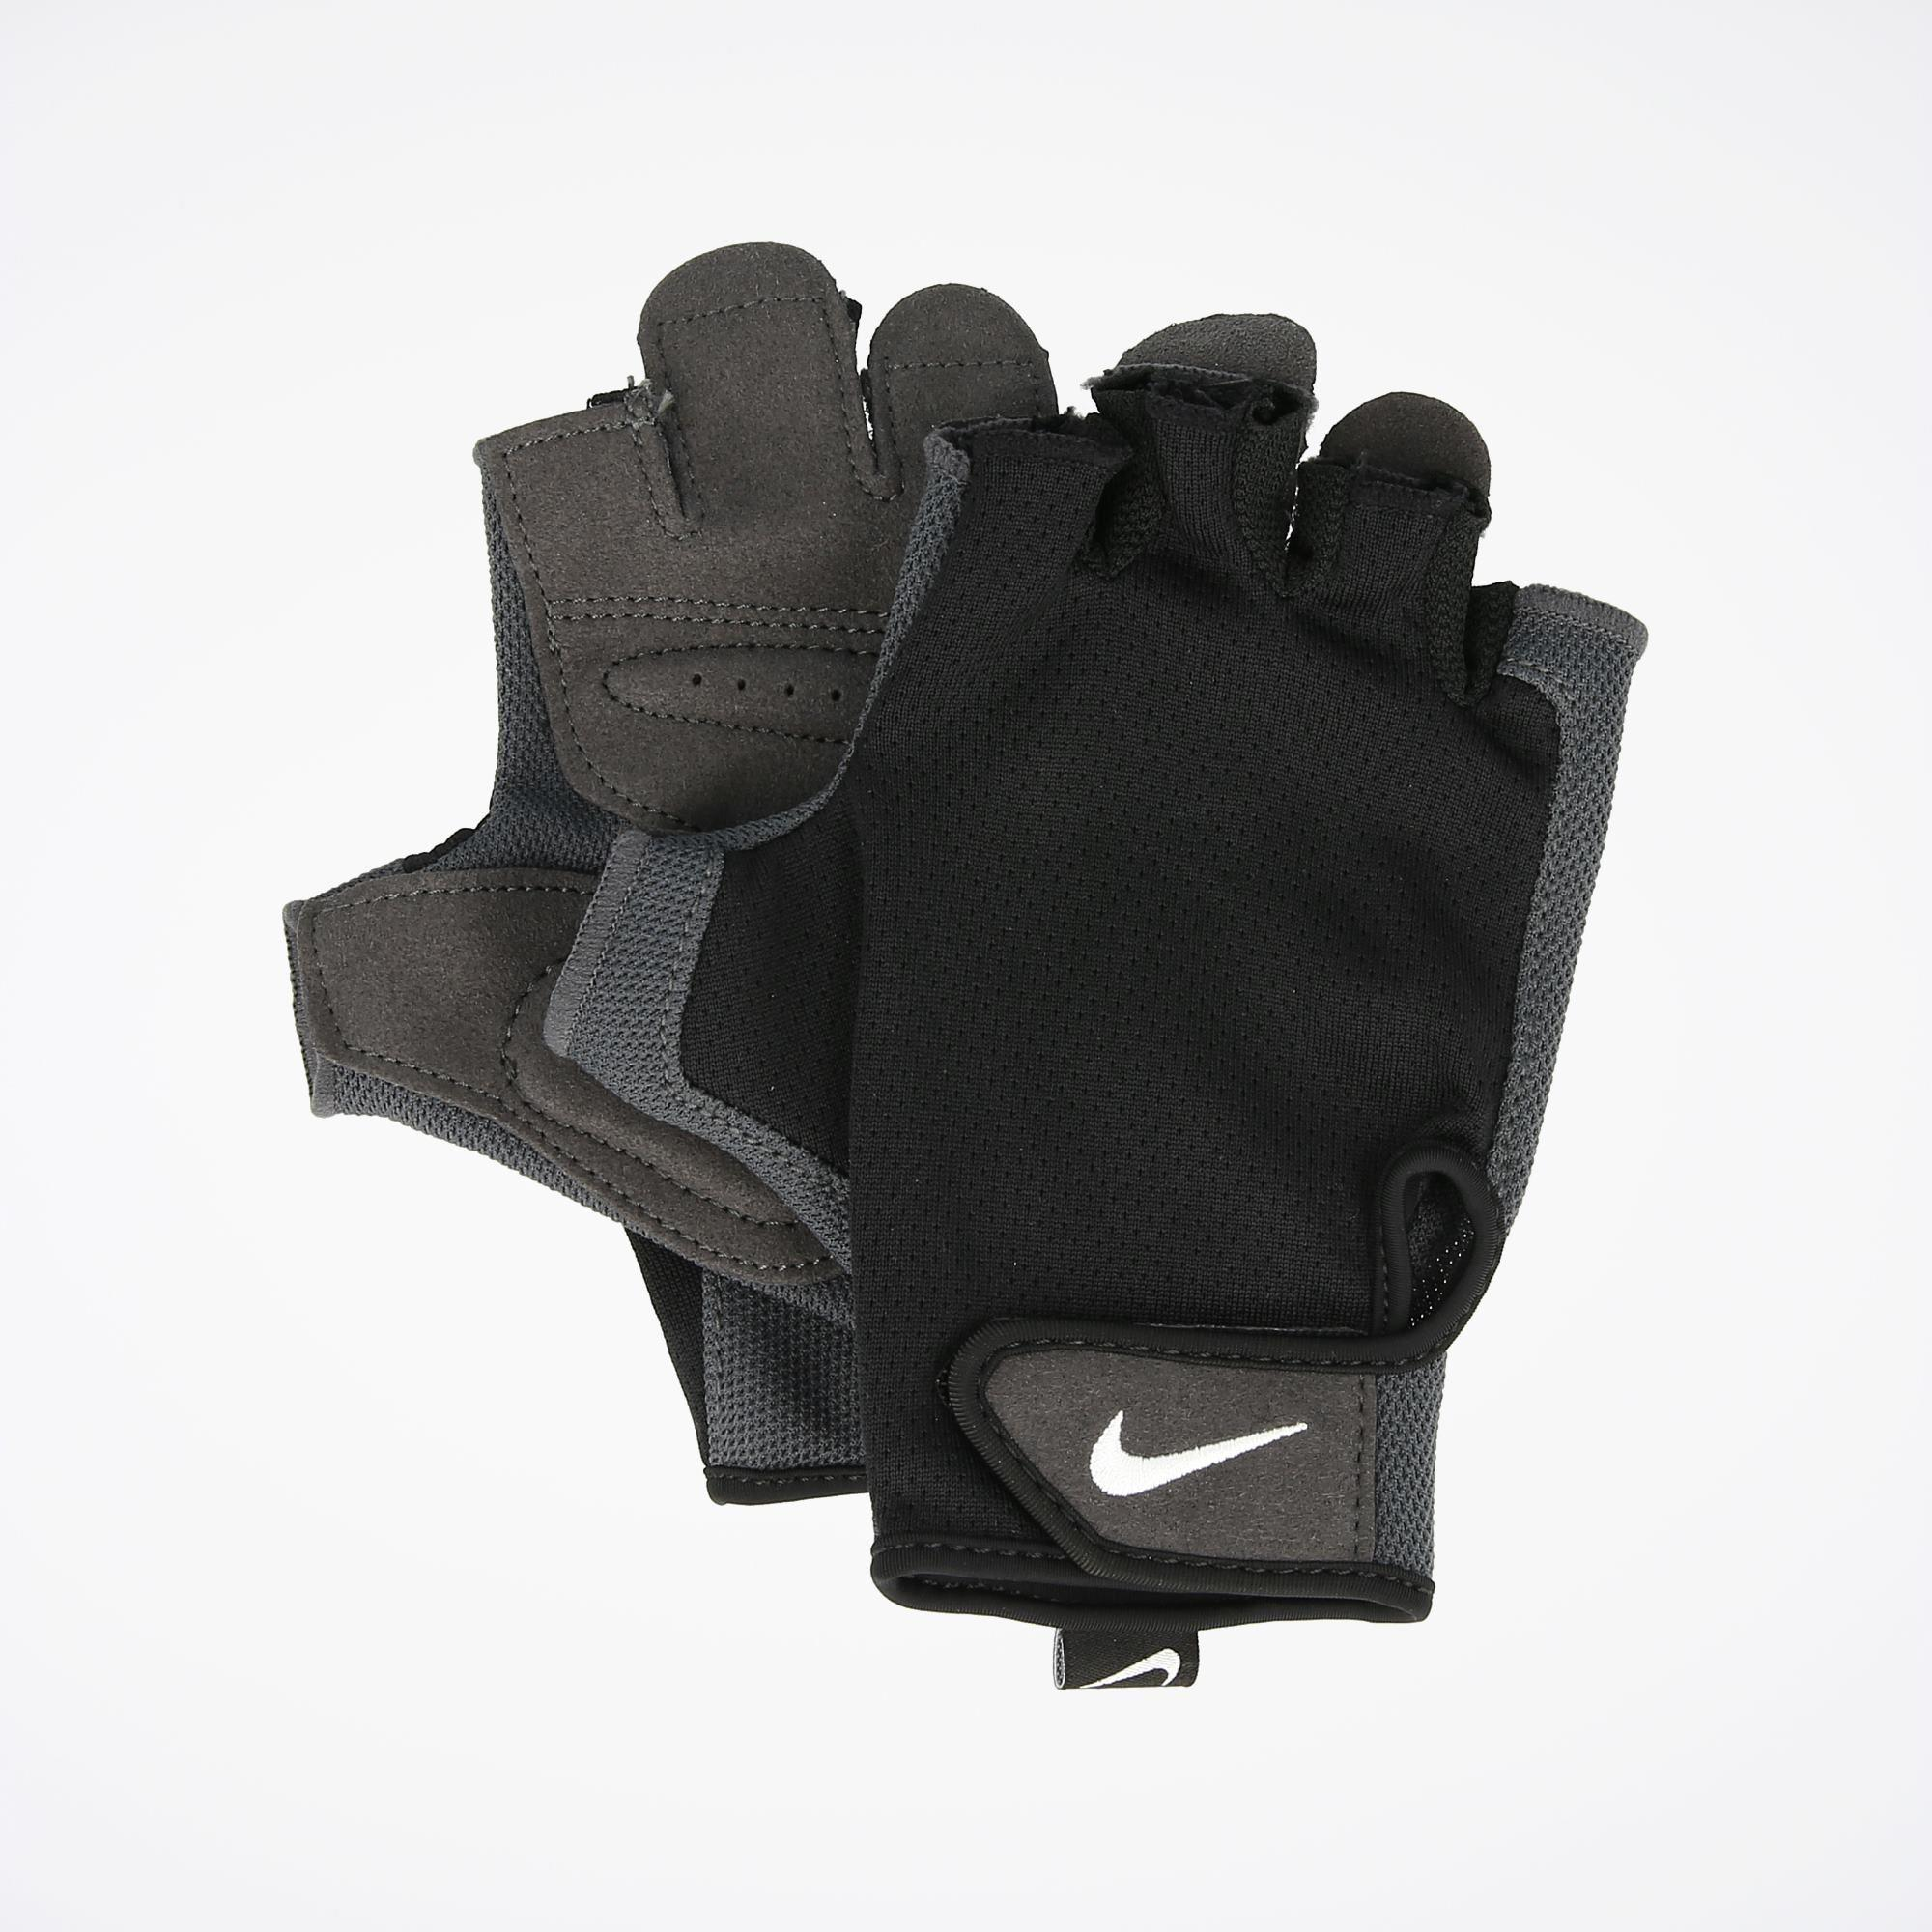 Nike N.LG.C5.057.LG MEN'S ESSENTIAL FITNESS GLOVES FITNESS GYM ELDİVENİ